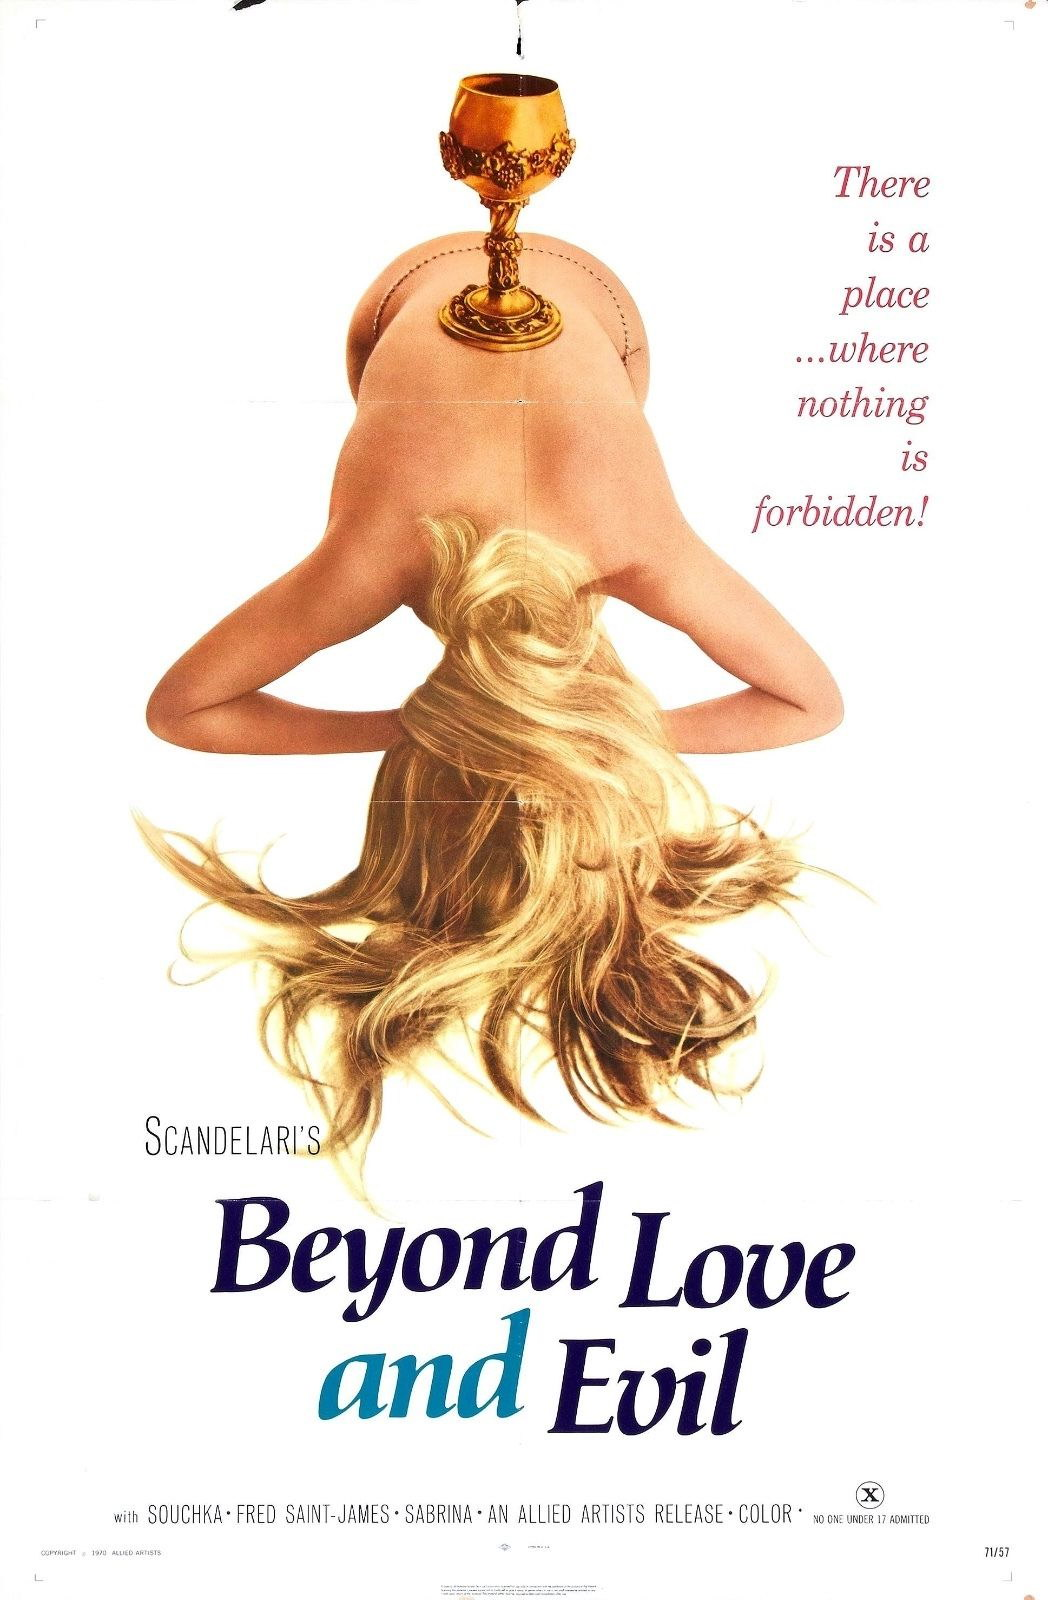 74064-Beyond-Love-and-Evil-Movie-1971-Drama-FRAMED-CANVAS-PRINT-Toile